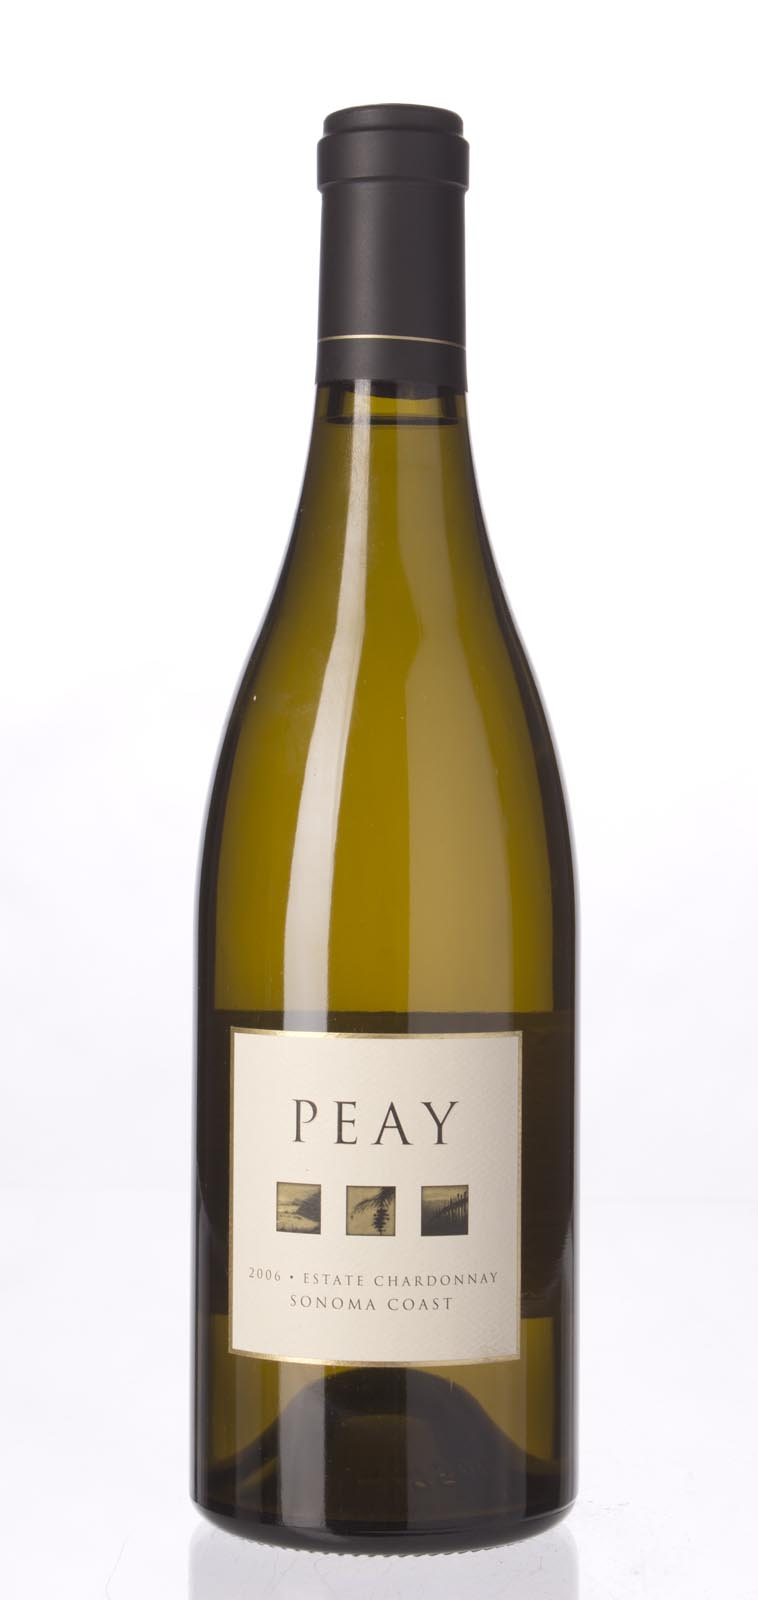 Peay Vineyards Chardonnay Sonoma Coast 2006, 750ml (ST92) from The BPW - Merchants of rare and fine wines.